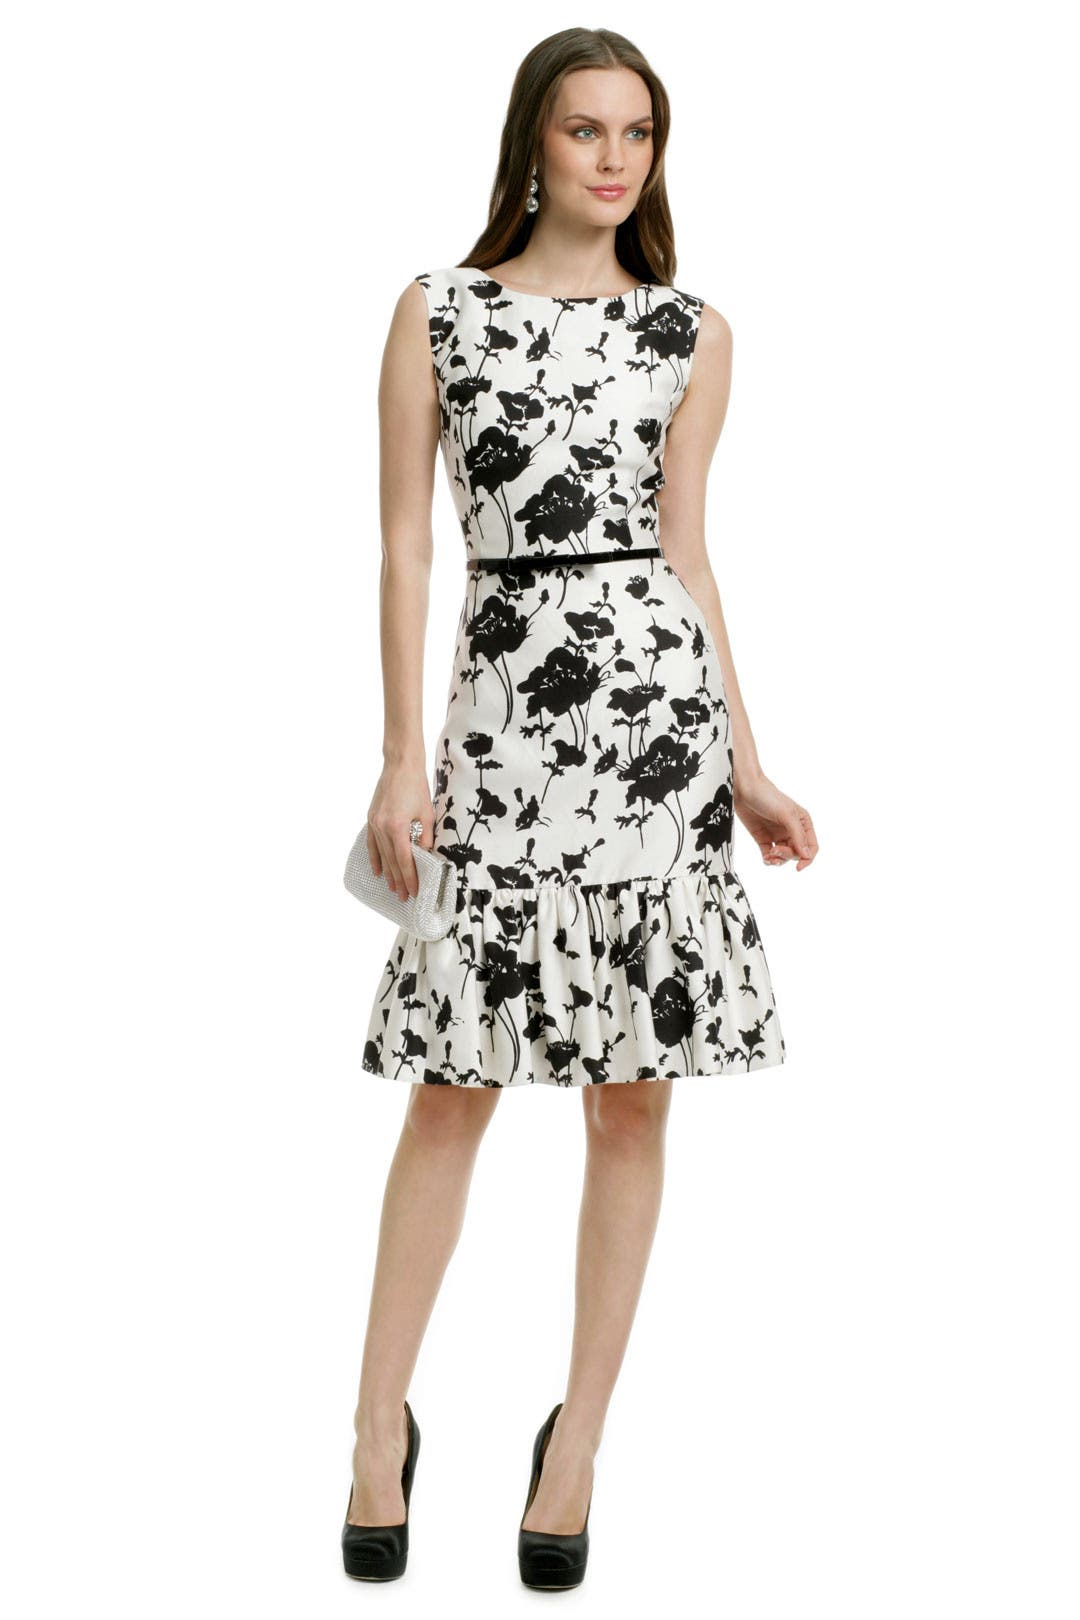 Boy Meets Girl Dress by kate spade new york